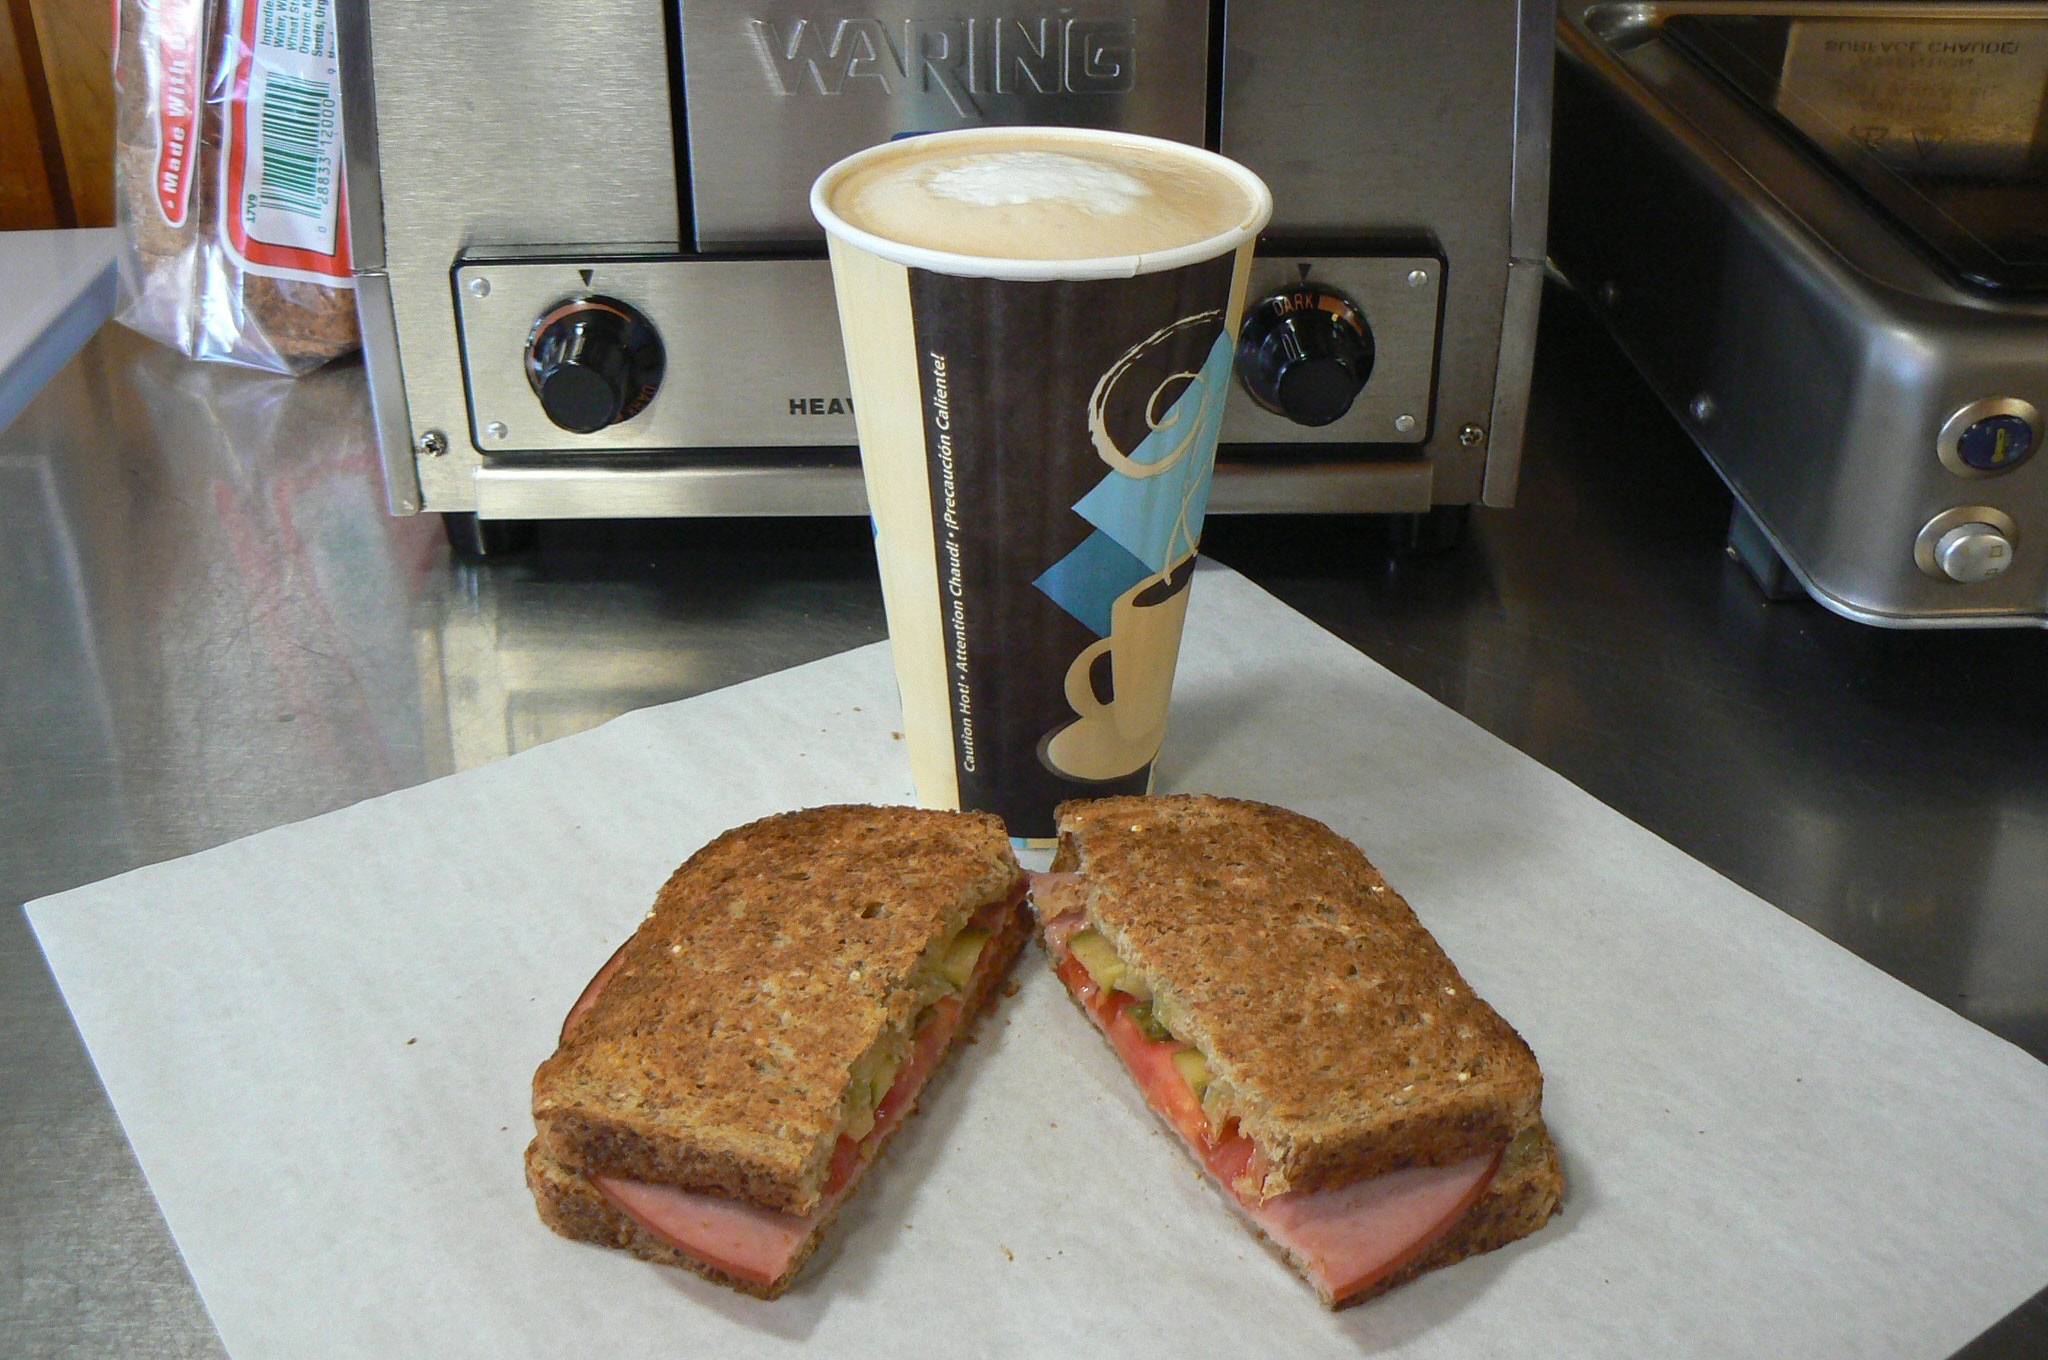 Latte and Sandwich